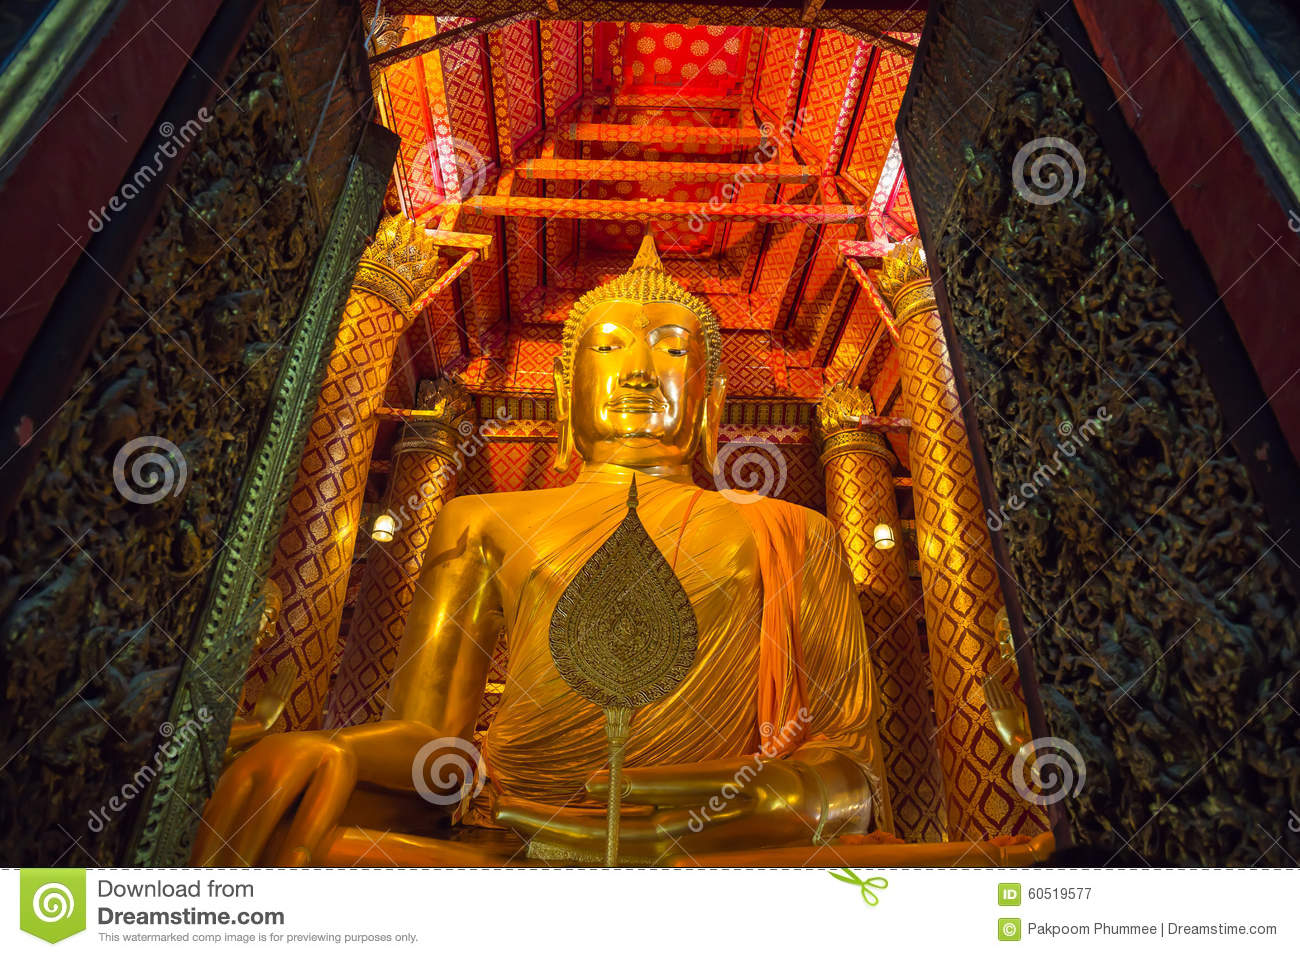 Big golden Buddha statue in temple at Wat Phanan Choeng Worawihan temple